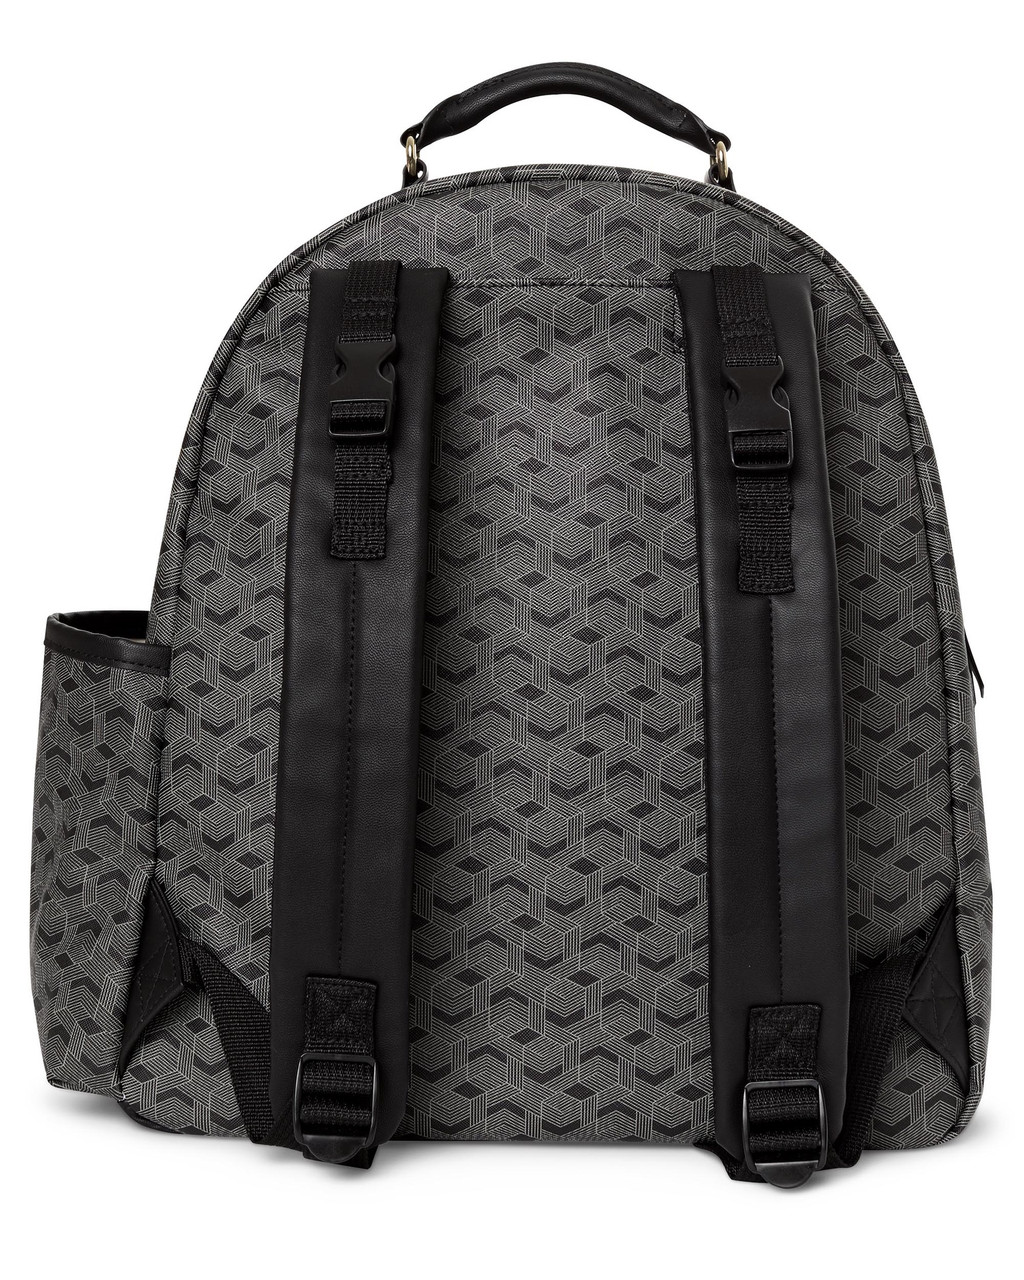 The Skip Hop Deco Saffiano Backpack features a bold yet understated style made from luxe textured vegan leather. Practical and stylish for on the go.